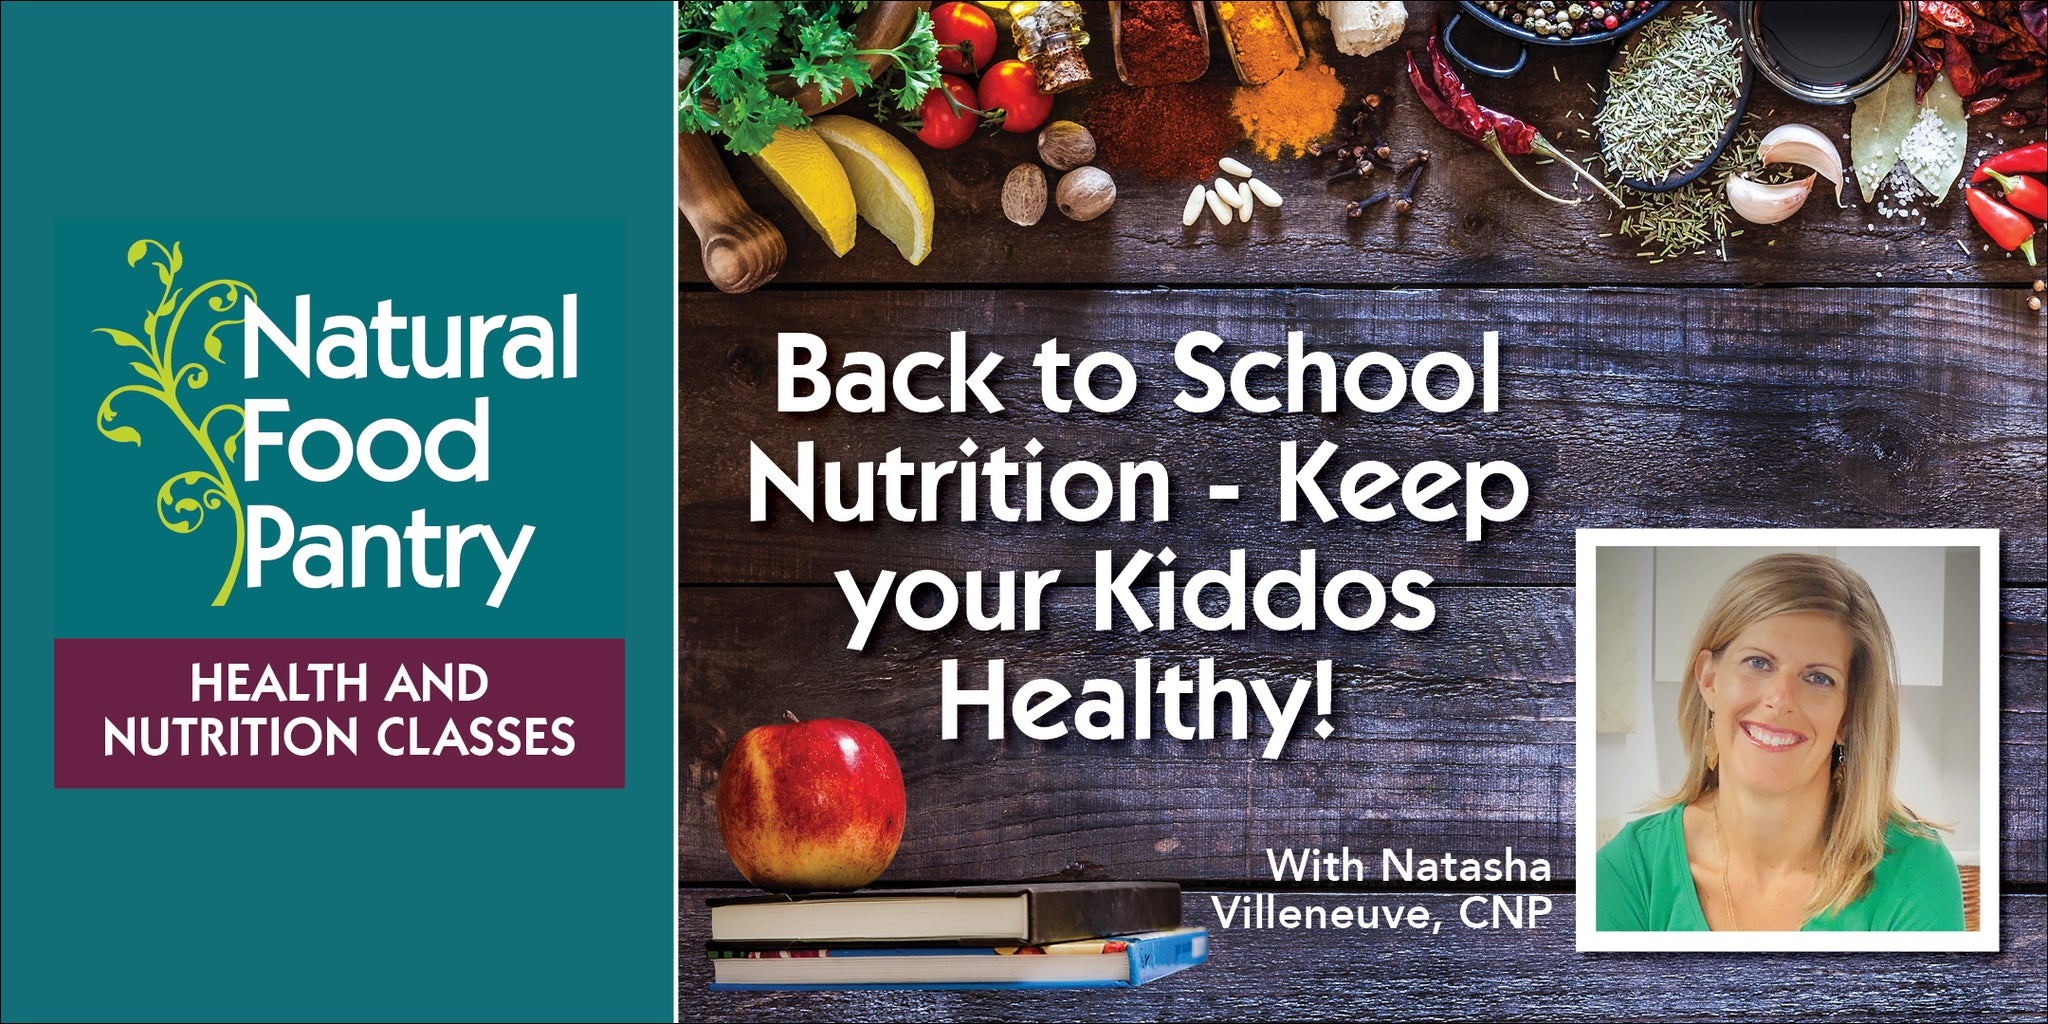 Aug 30: Back to School Nutrition - Keep your Kiddos Healthy!